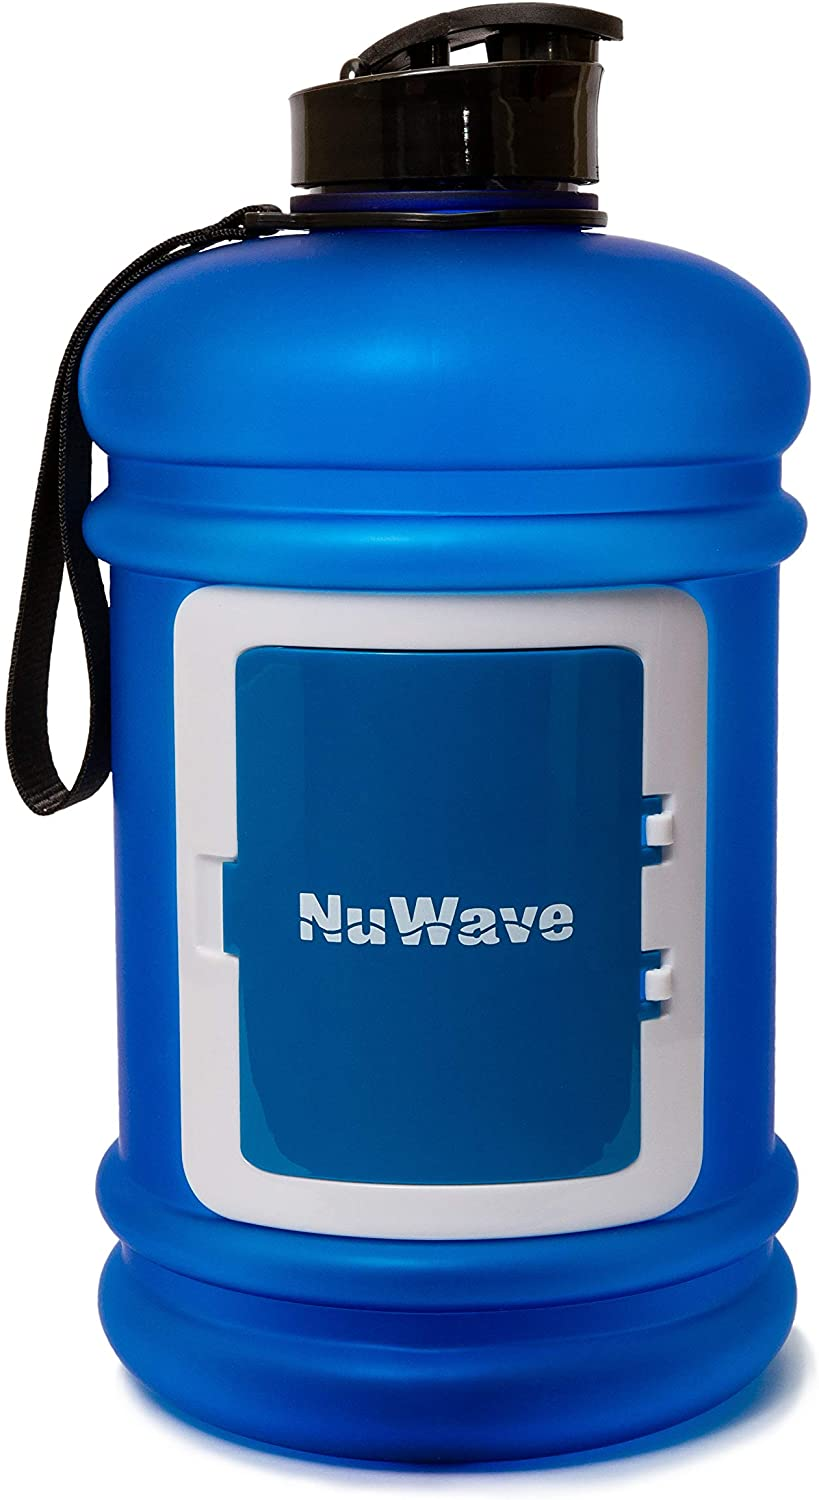 NuWave Fitness Half Gallon 74 OZ / 2.2L Water Jug Dishwasher Safe Large Water Bottle Front Card Holder Tritan Material BPA Free Leak Proof Gym Container (Blue)